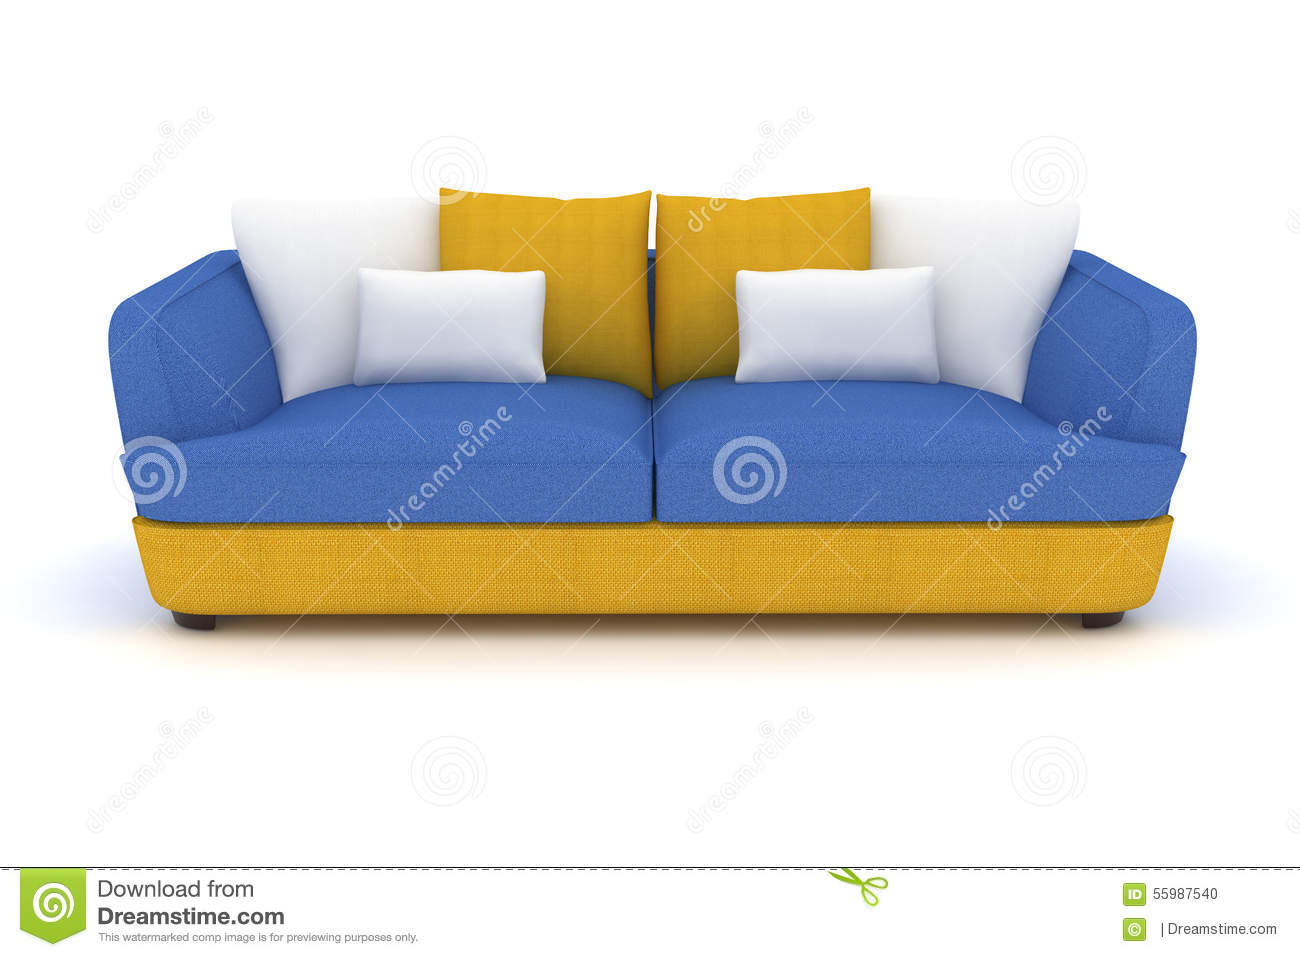 Yellow Blue Sofa With White Pillows Stock Illustration  : yellow blue sofa white pillows 55987540 from dreamstime.com size 1300 x 957 jpeg 88kB